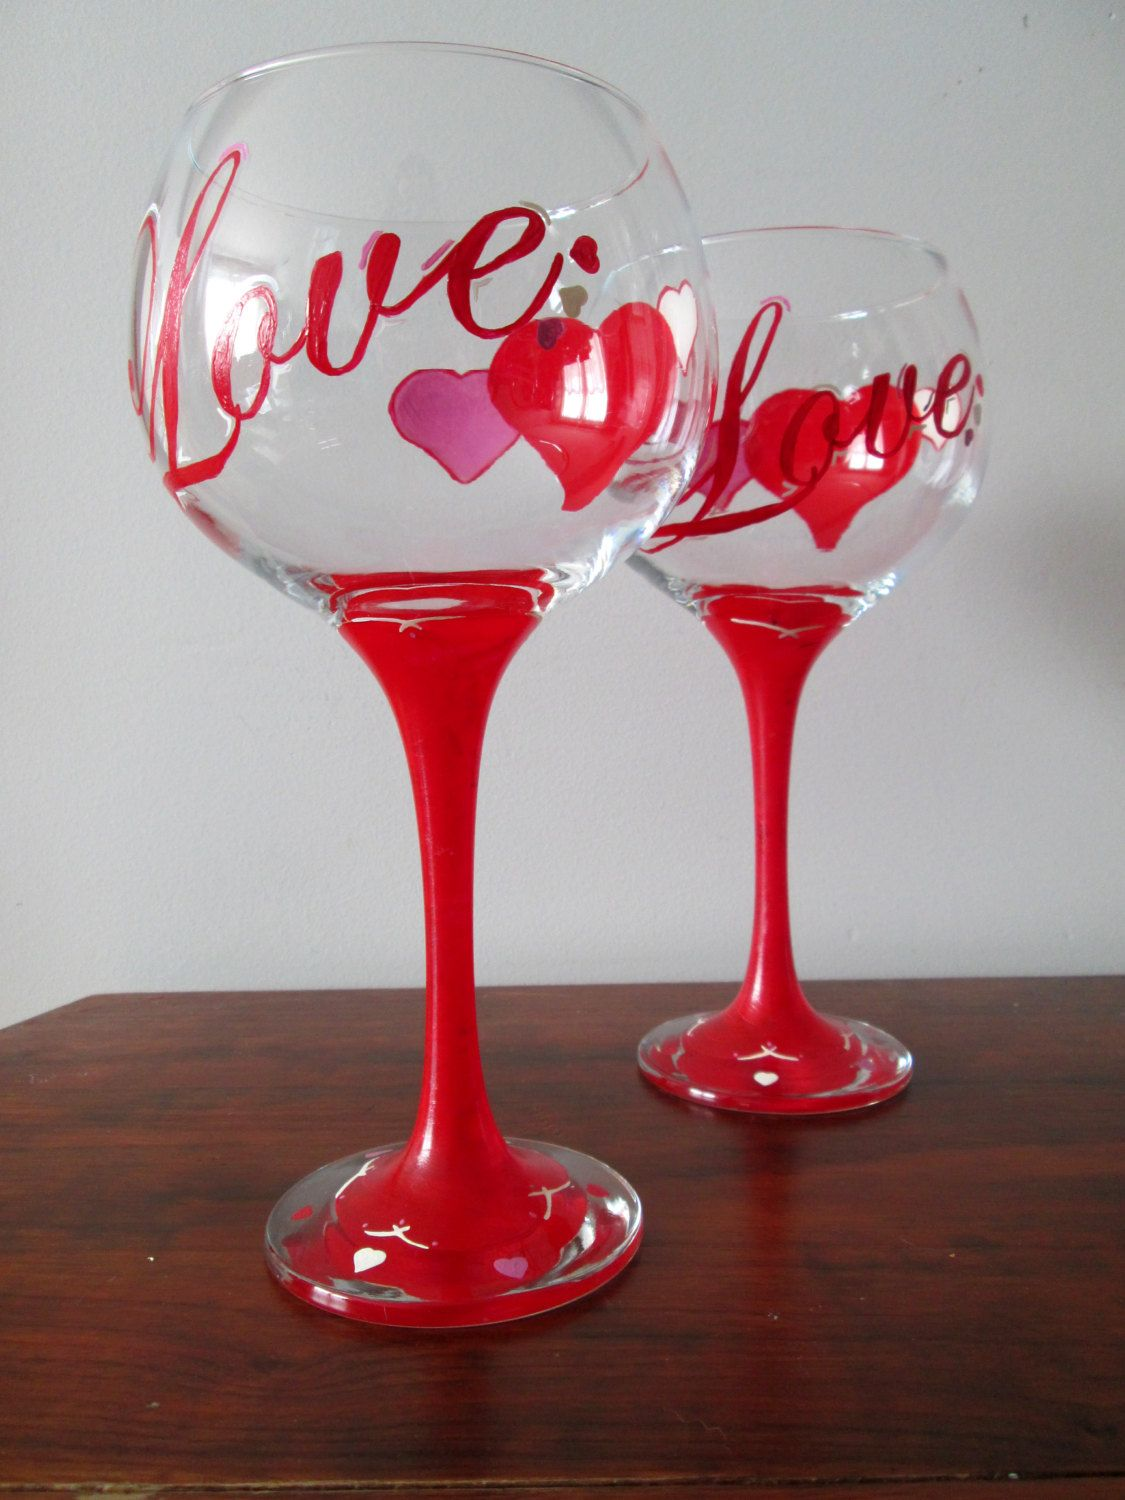 Valentine S Day Hearts And Love Hand Painted Wine By Vdesigns13 16 00 With Images Painted Wine Glass Hand Painted Wine Glasses Wine Glass Designs